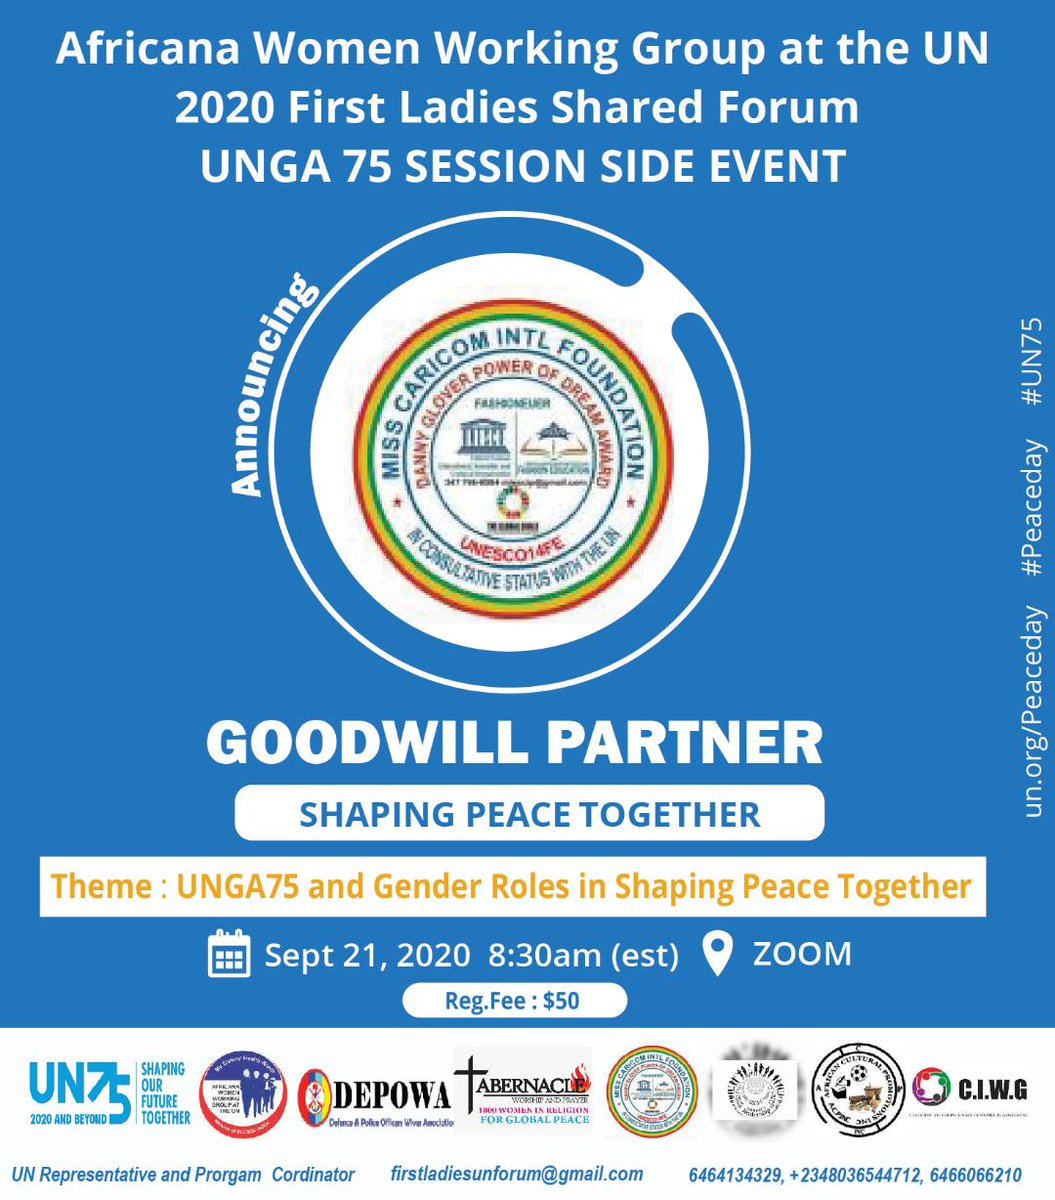 We are proud to share MISS CARICOM INTERNATIONAL FOUNDATION , as GOODWILL PARTNERS at Africana Women Working Group at the UN 2020, first Ladies Shared Together     Registration Fees: $50  Registration Link: https://t.co/RhJkIvuOVH #UN75 #UNPeacekeeping #unpeaceday #PeaceDay https://t.co/UZO0IkTnHF